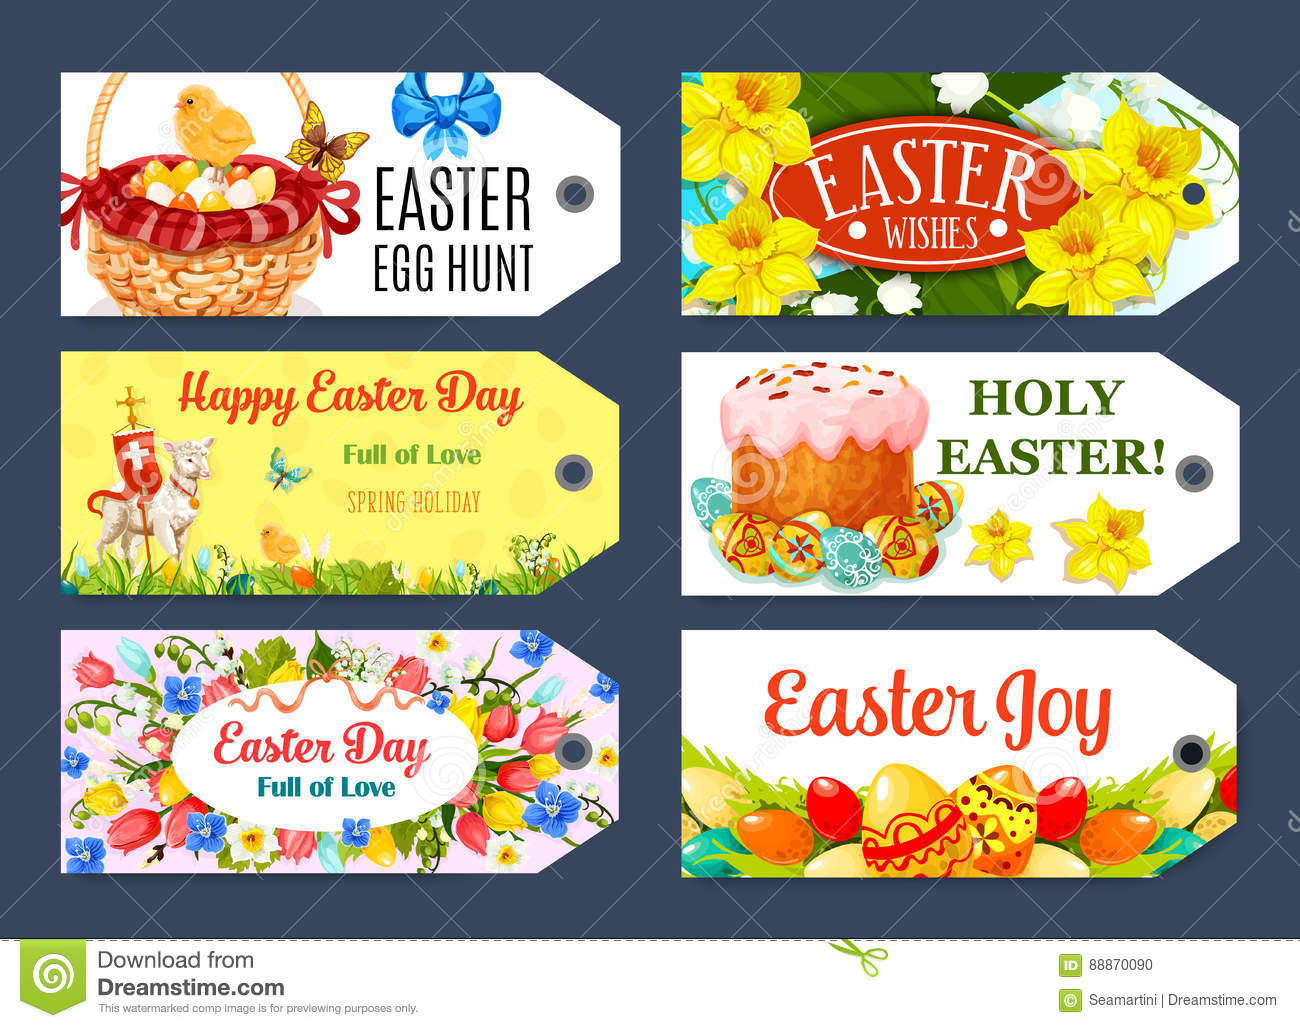 Easter egg hunt gift tag and label set design stock vector easter egg hunt gift tag and label set design royalty free vector negle Image collections